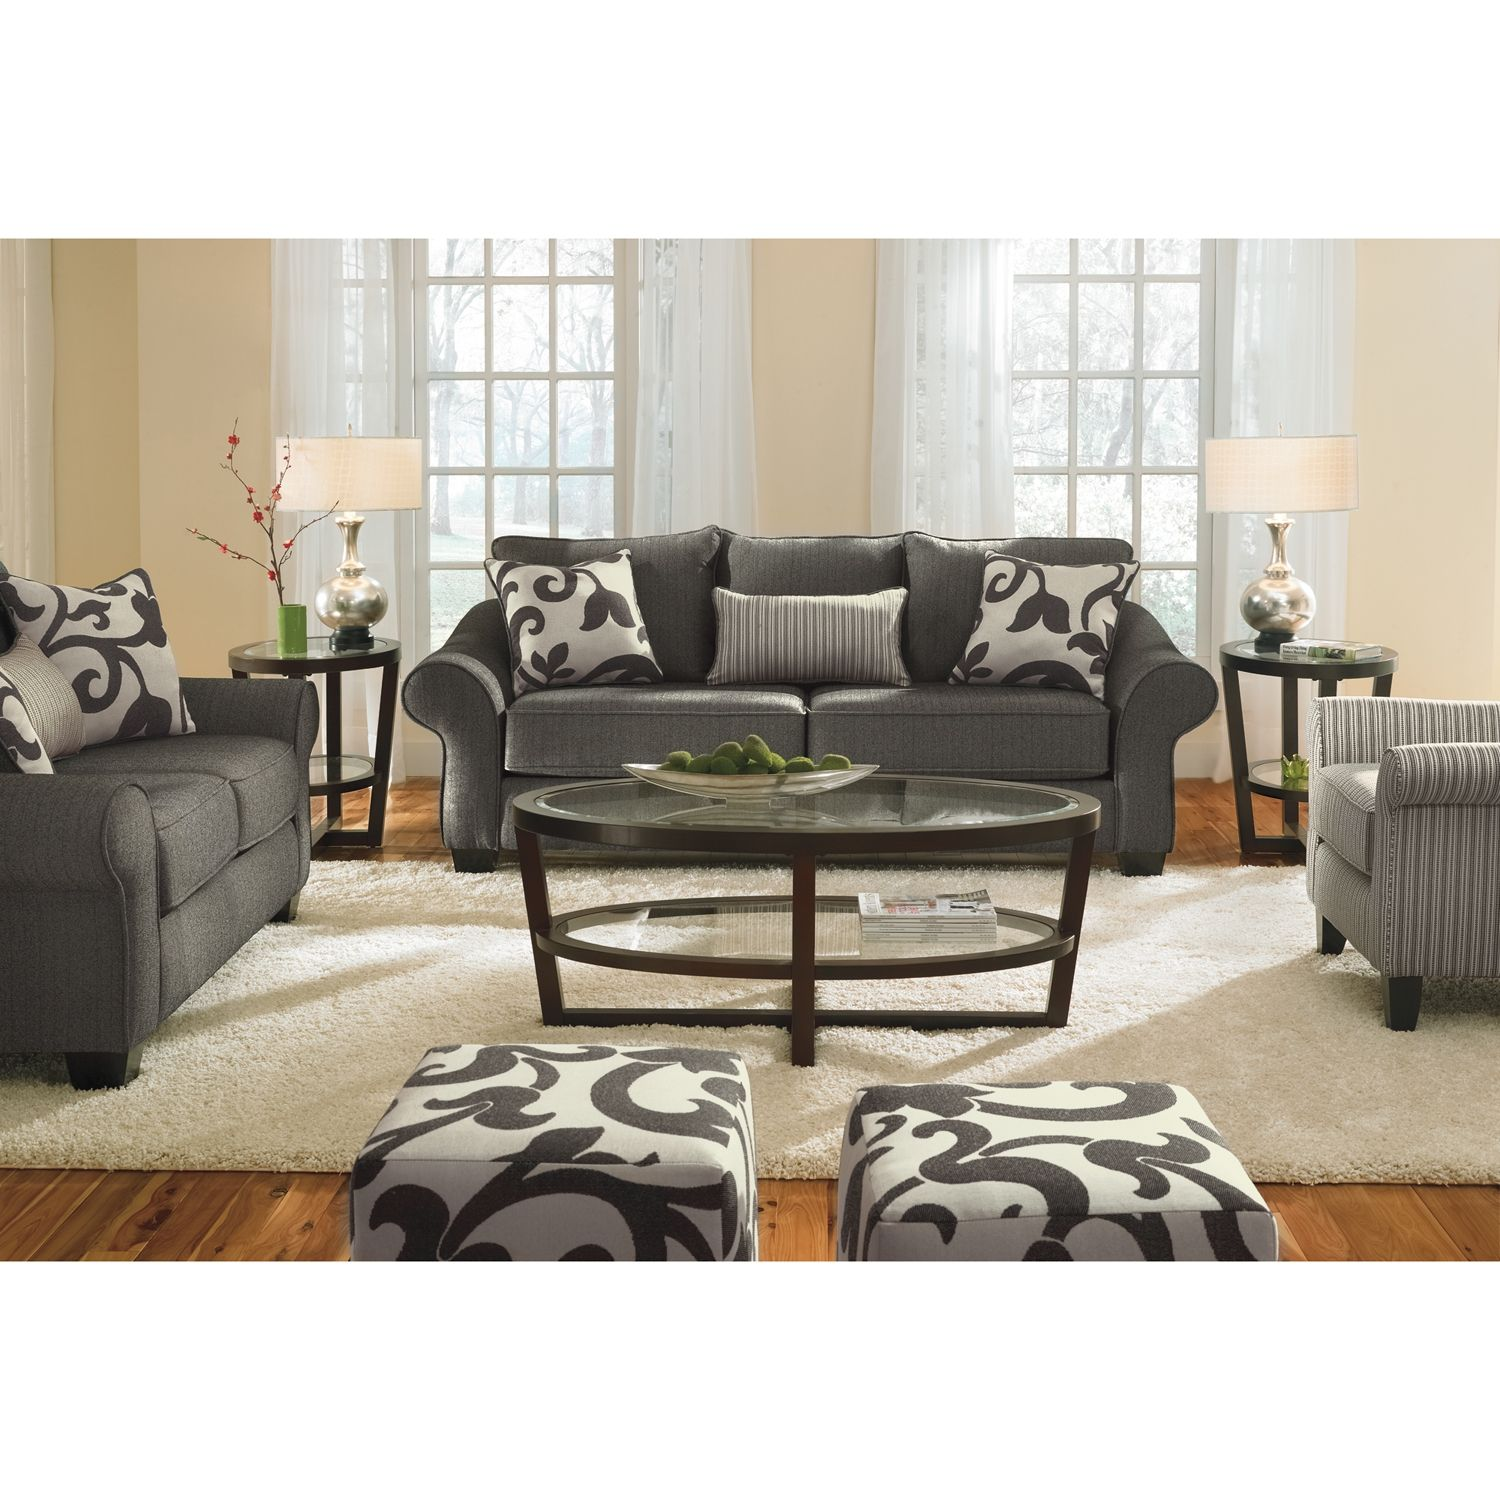 Colette Upholstery Seat Gray Herringbone Sofa With Accent